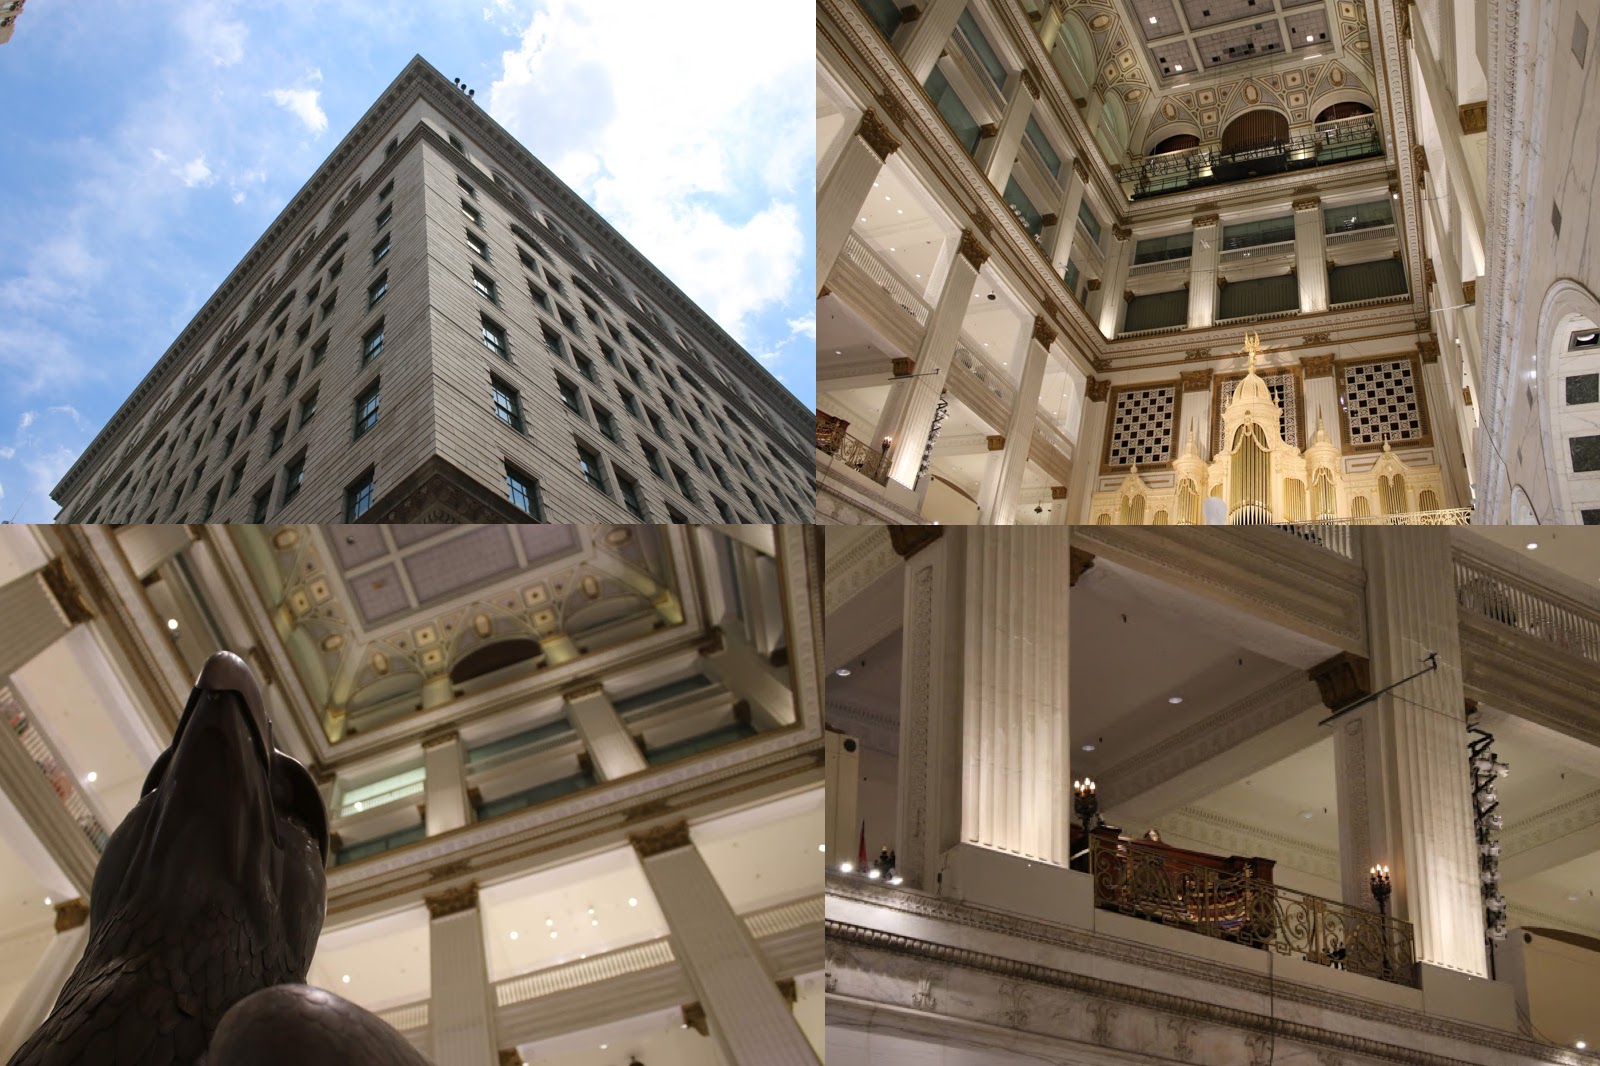 Philly's Macy's/Wanamaker's: World's Largest Musical